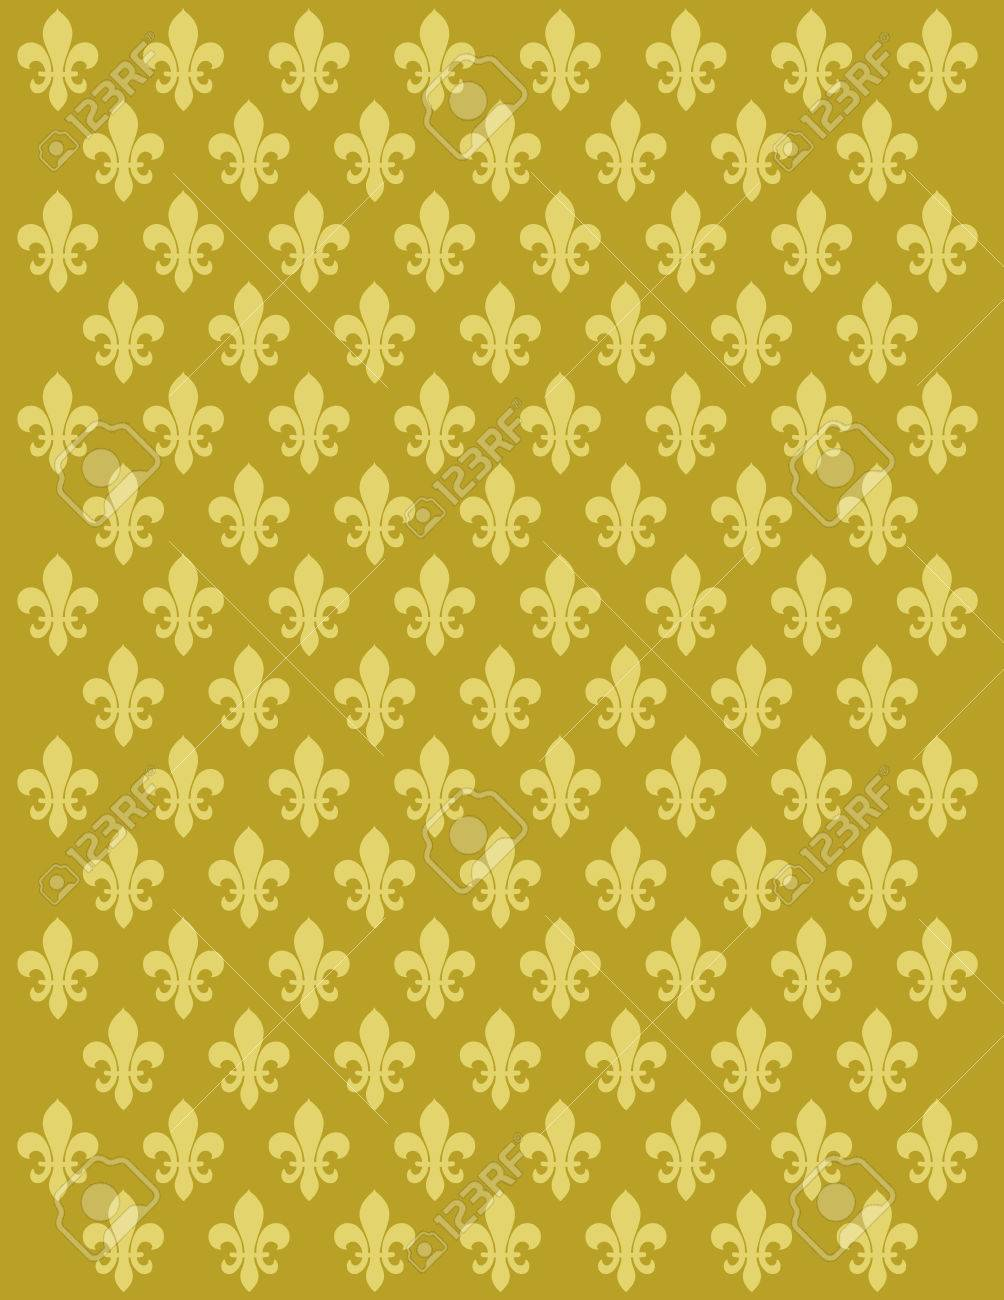 French Lily Flower Motif Background Vector Design Royalty Free